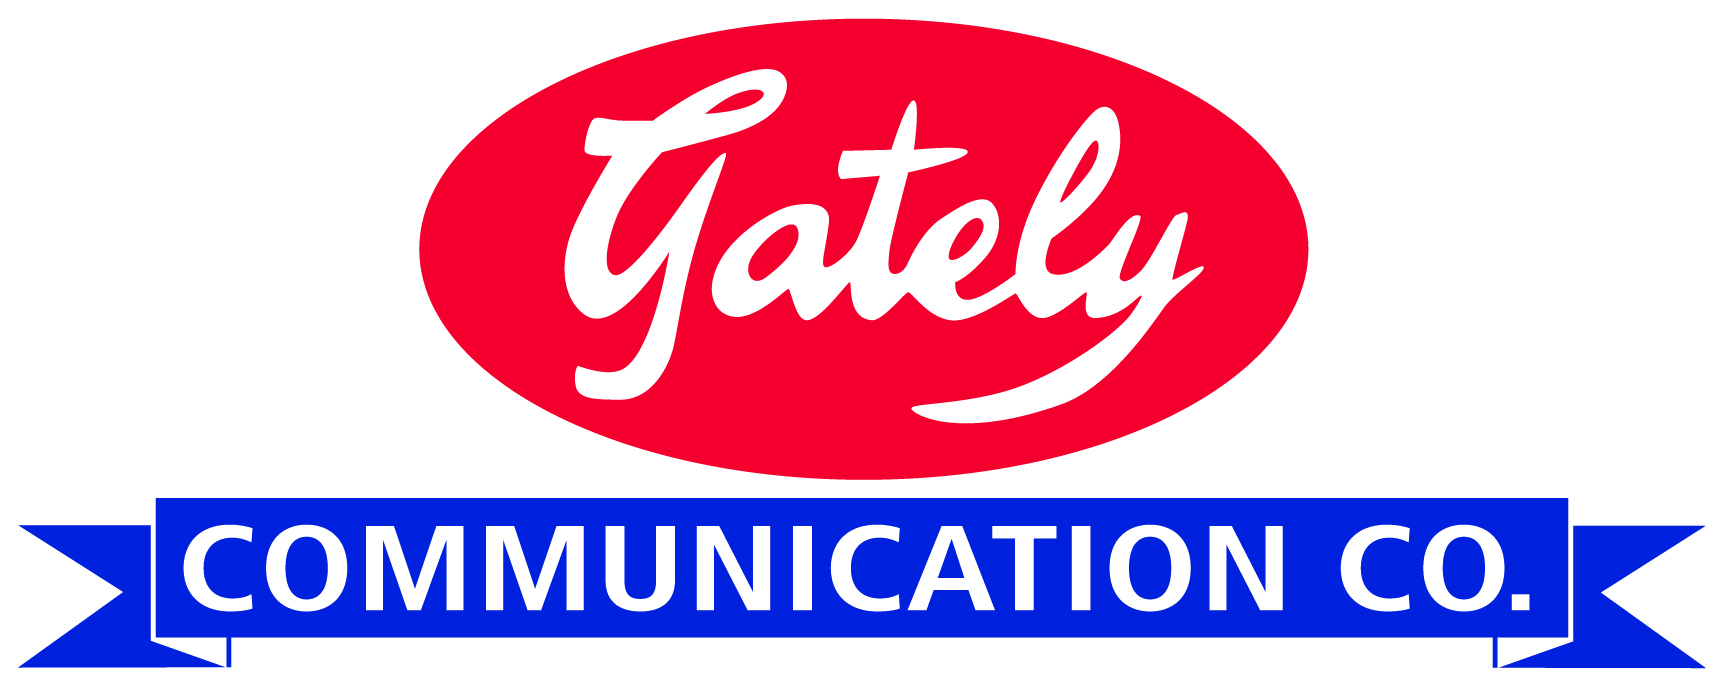 Gately Communications